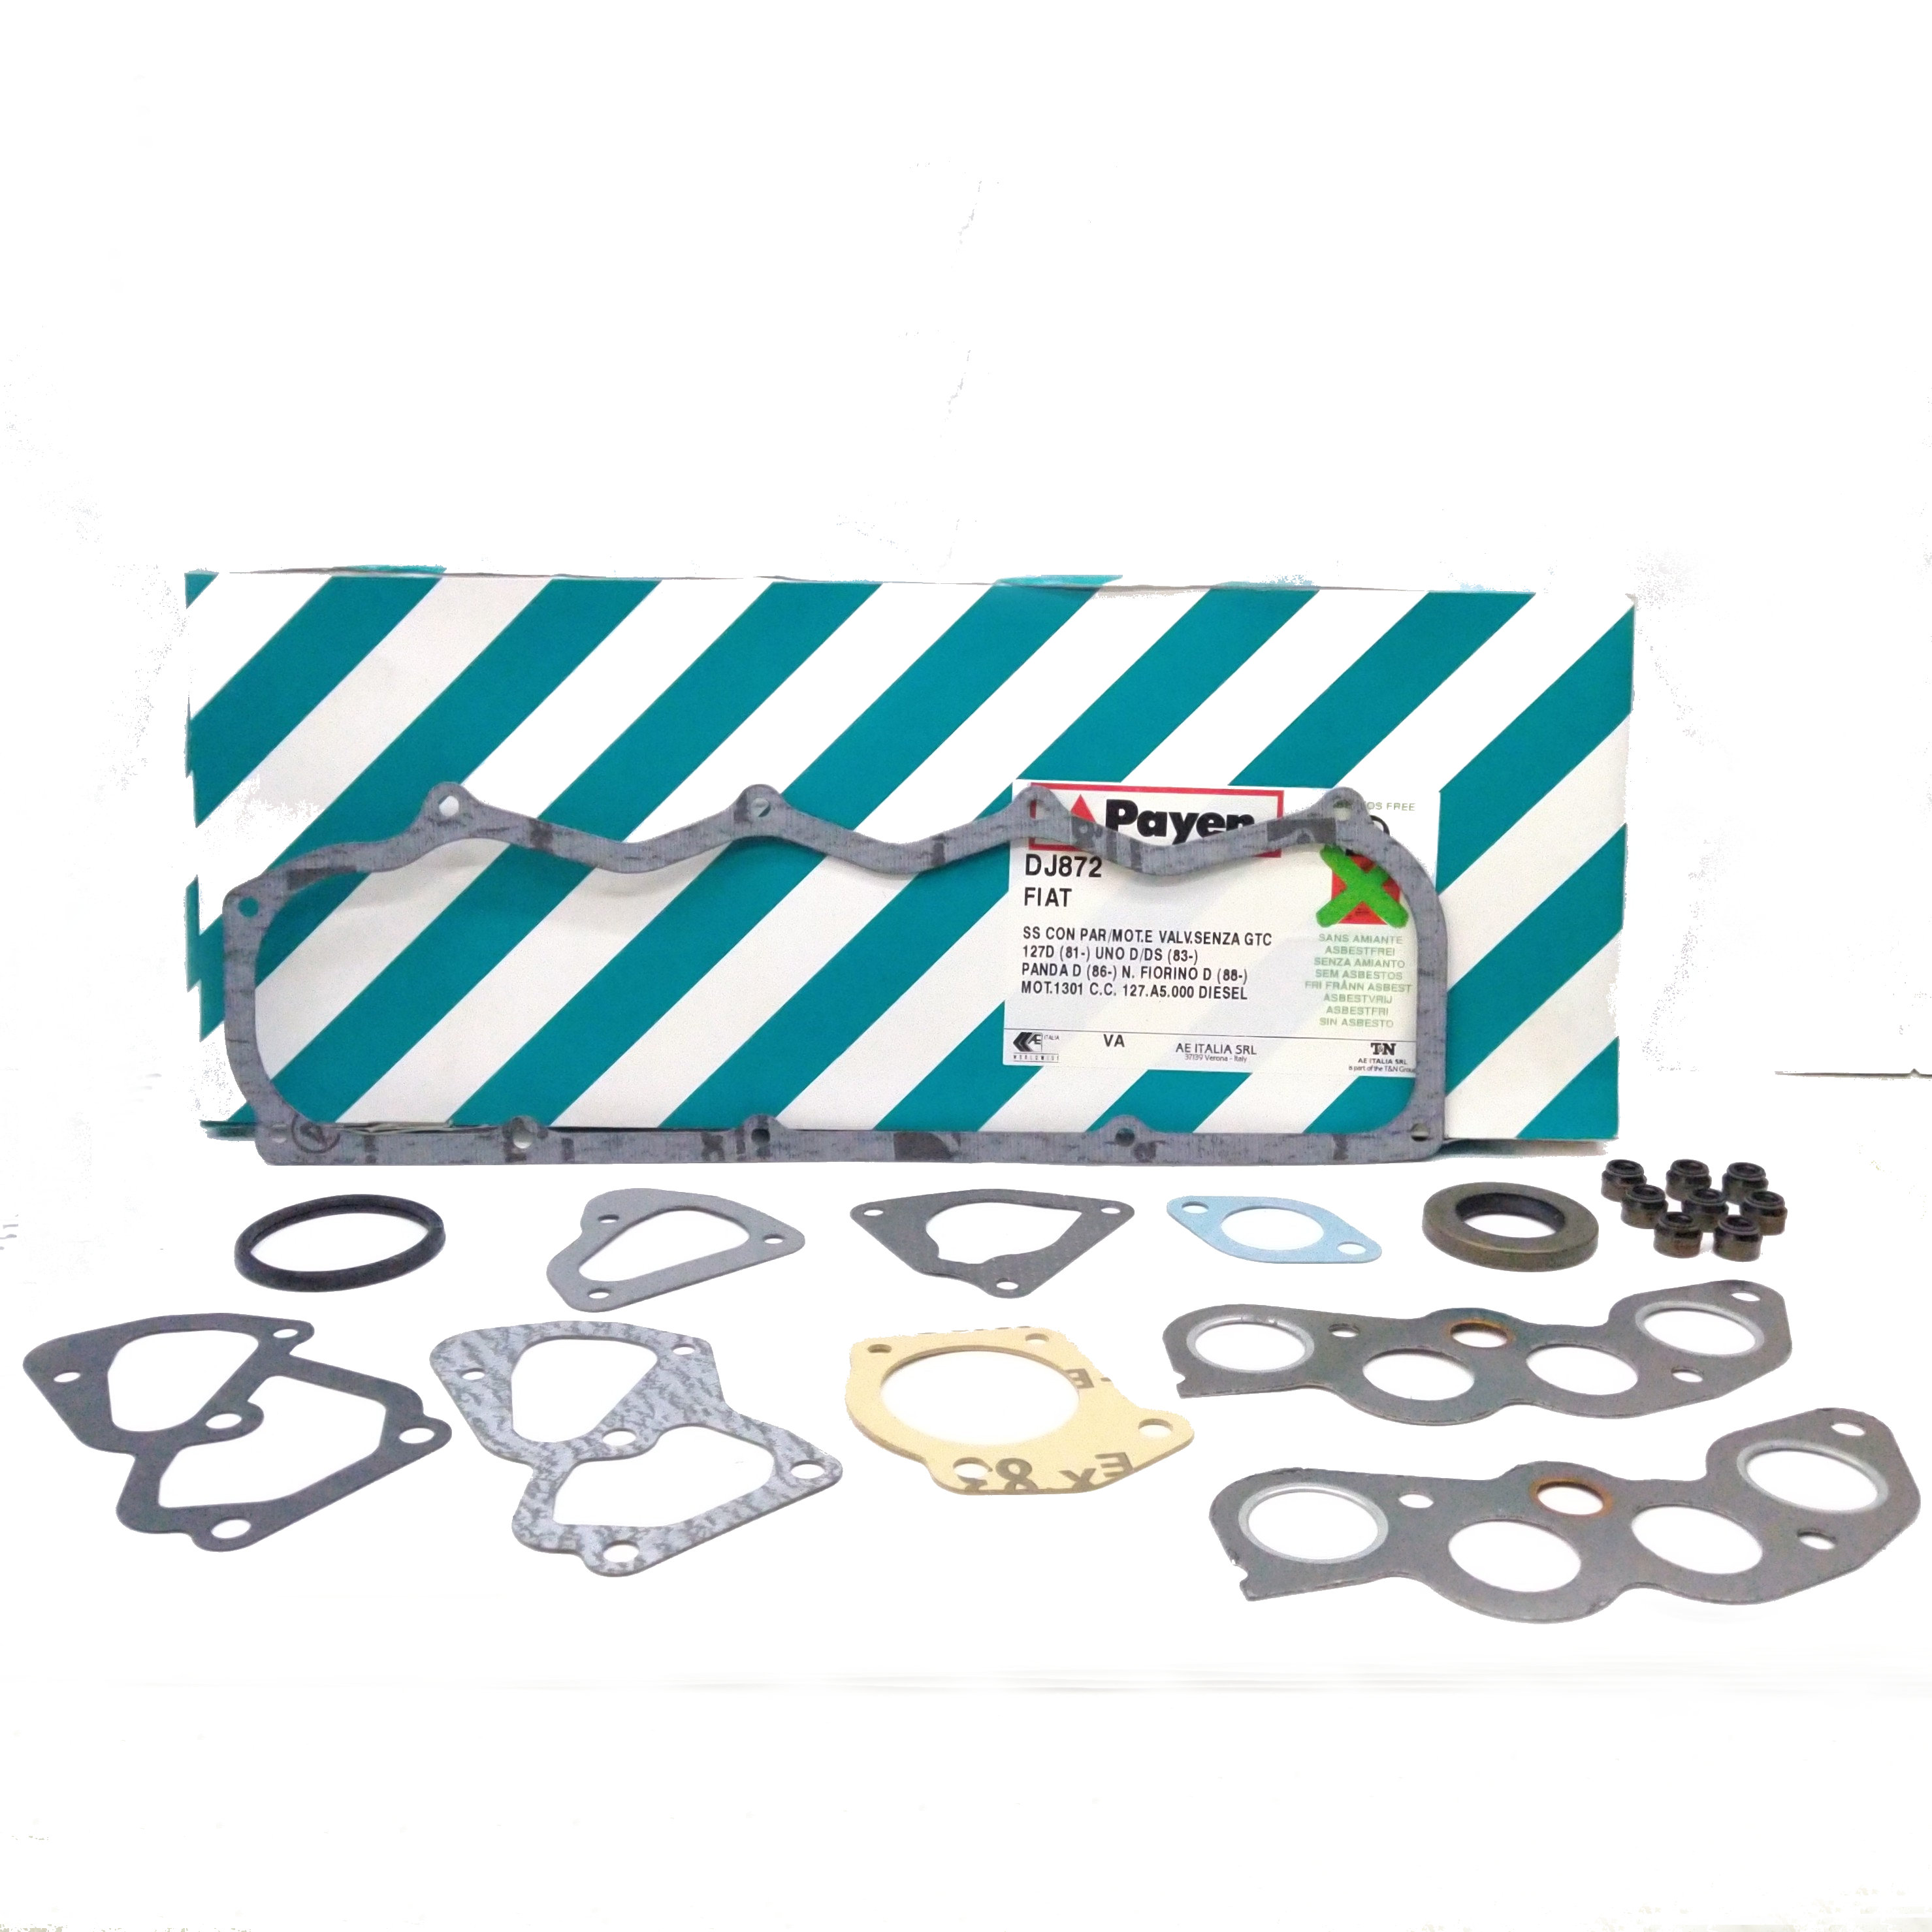 HEAD GASKET KIT FIAT 127 - FIORINO - PANDA PAYEN FOR 5881360